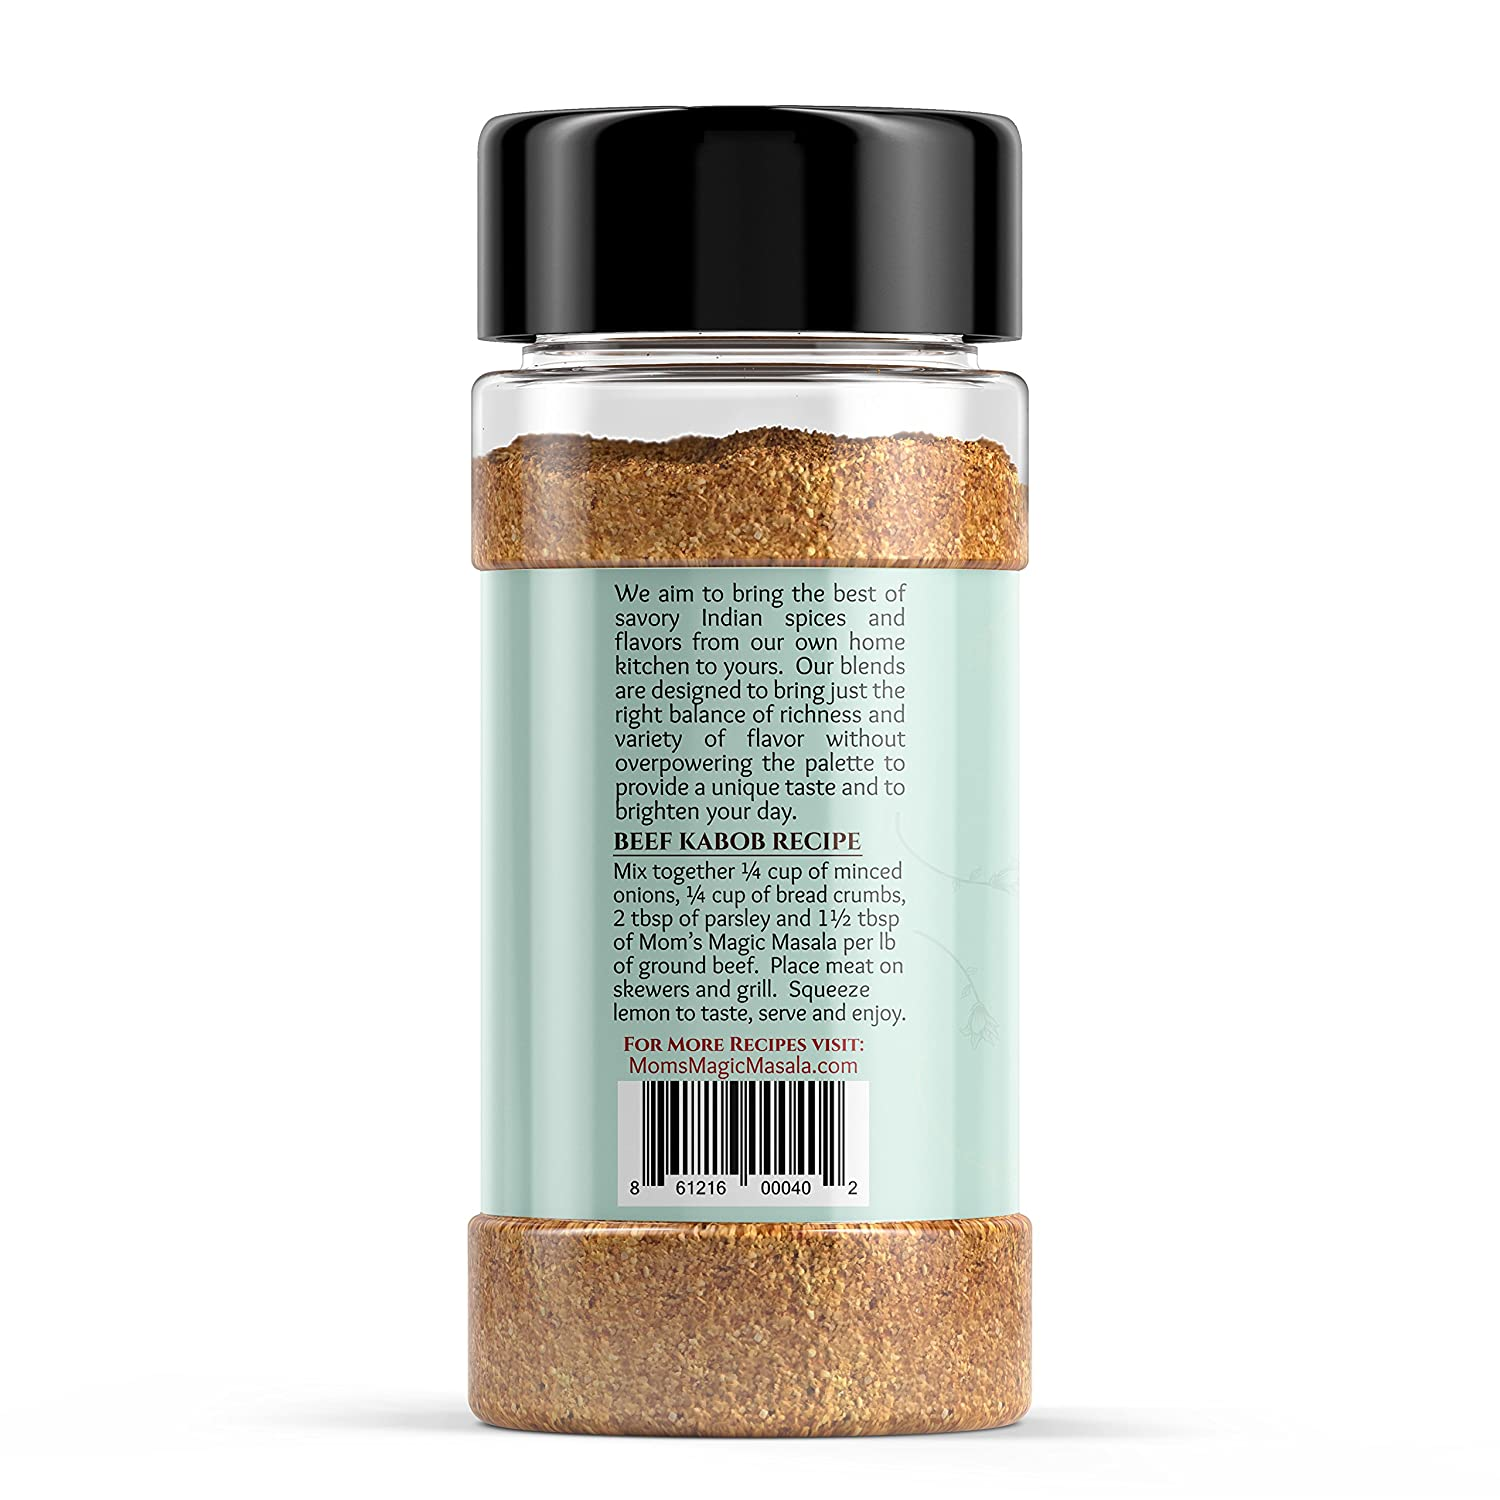 Amazon.com : All-Natural Indian Spice Blend : Grocery & Gourmet Food